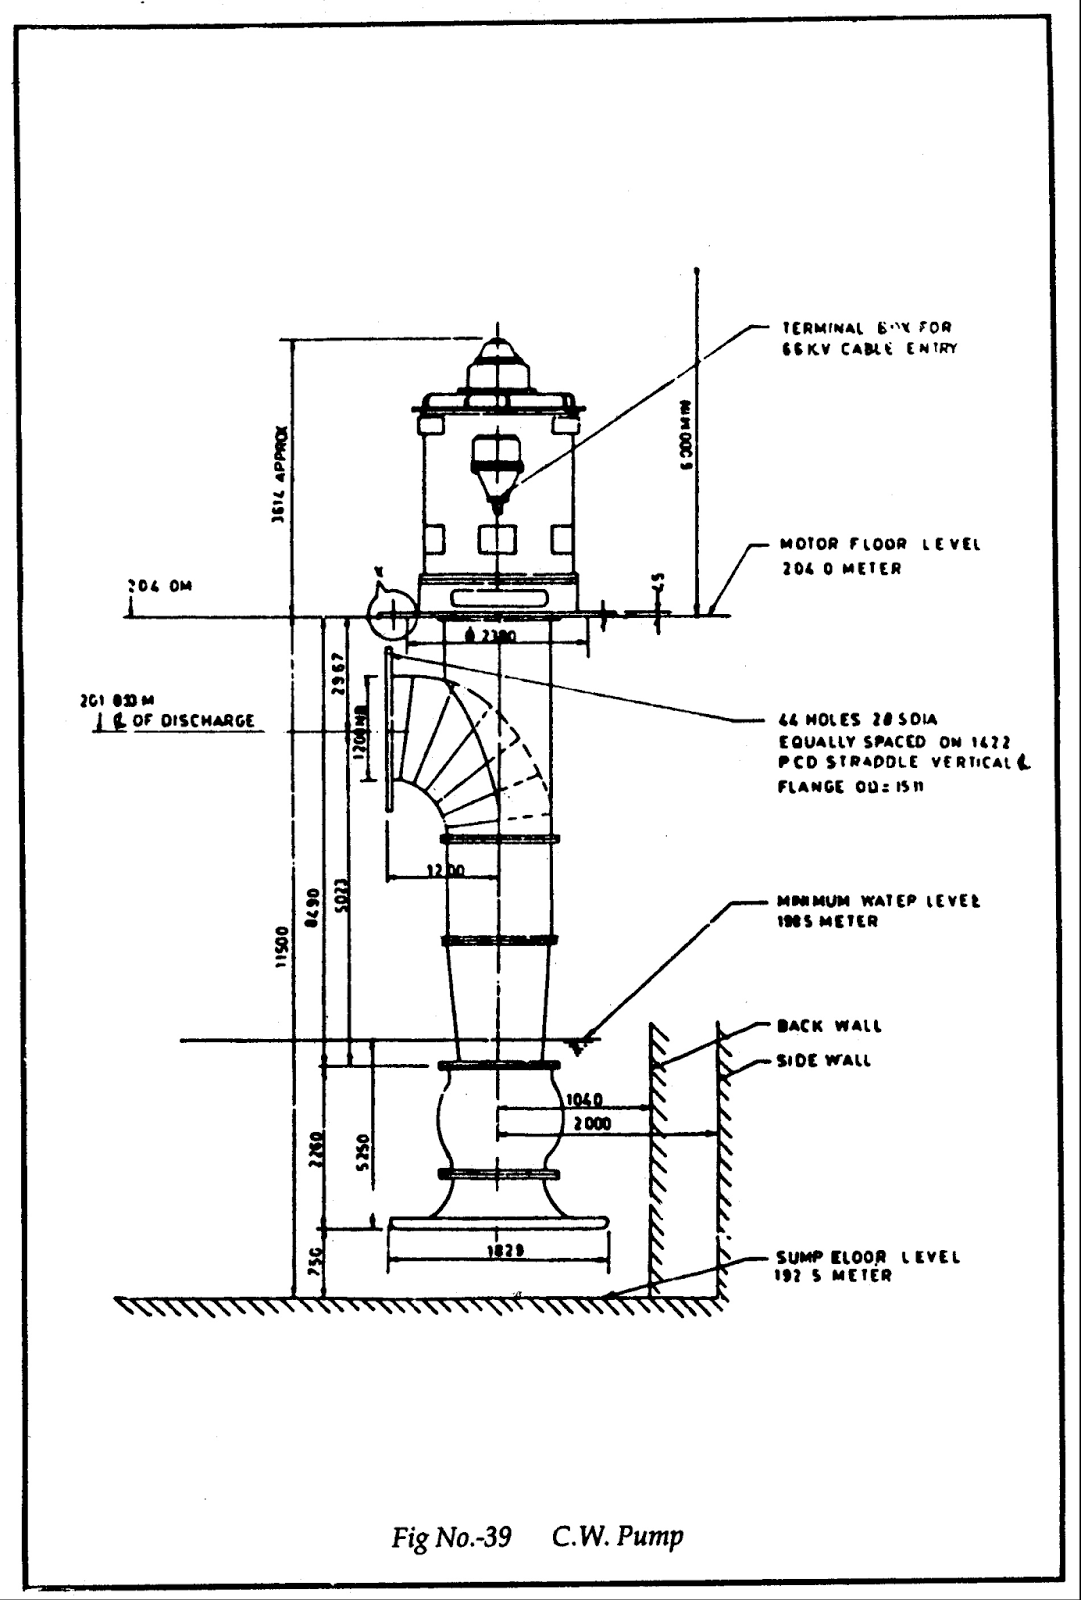 Pump Suction And Discharge Piping Arrangement